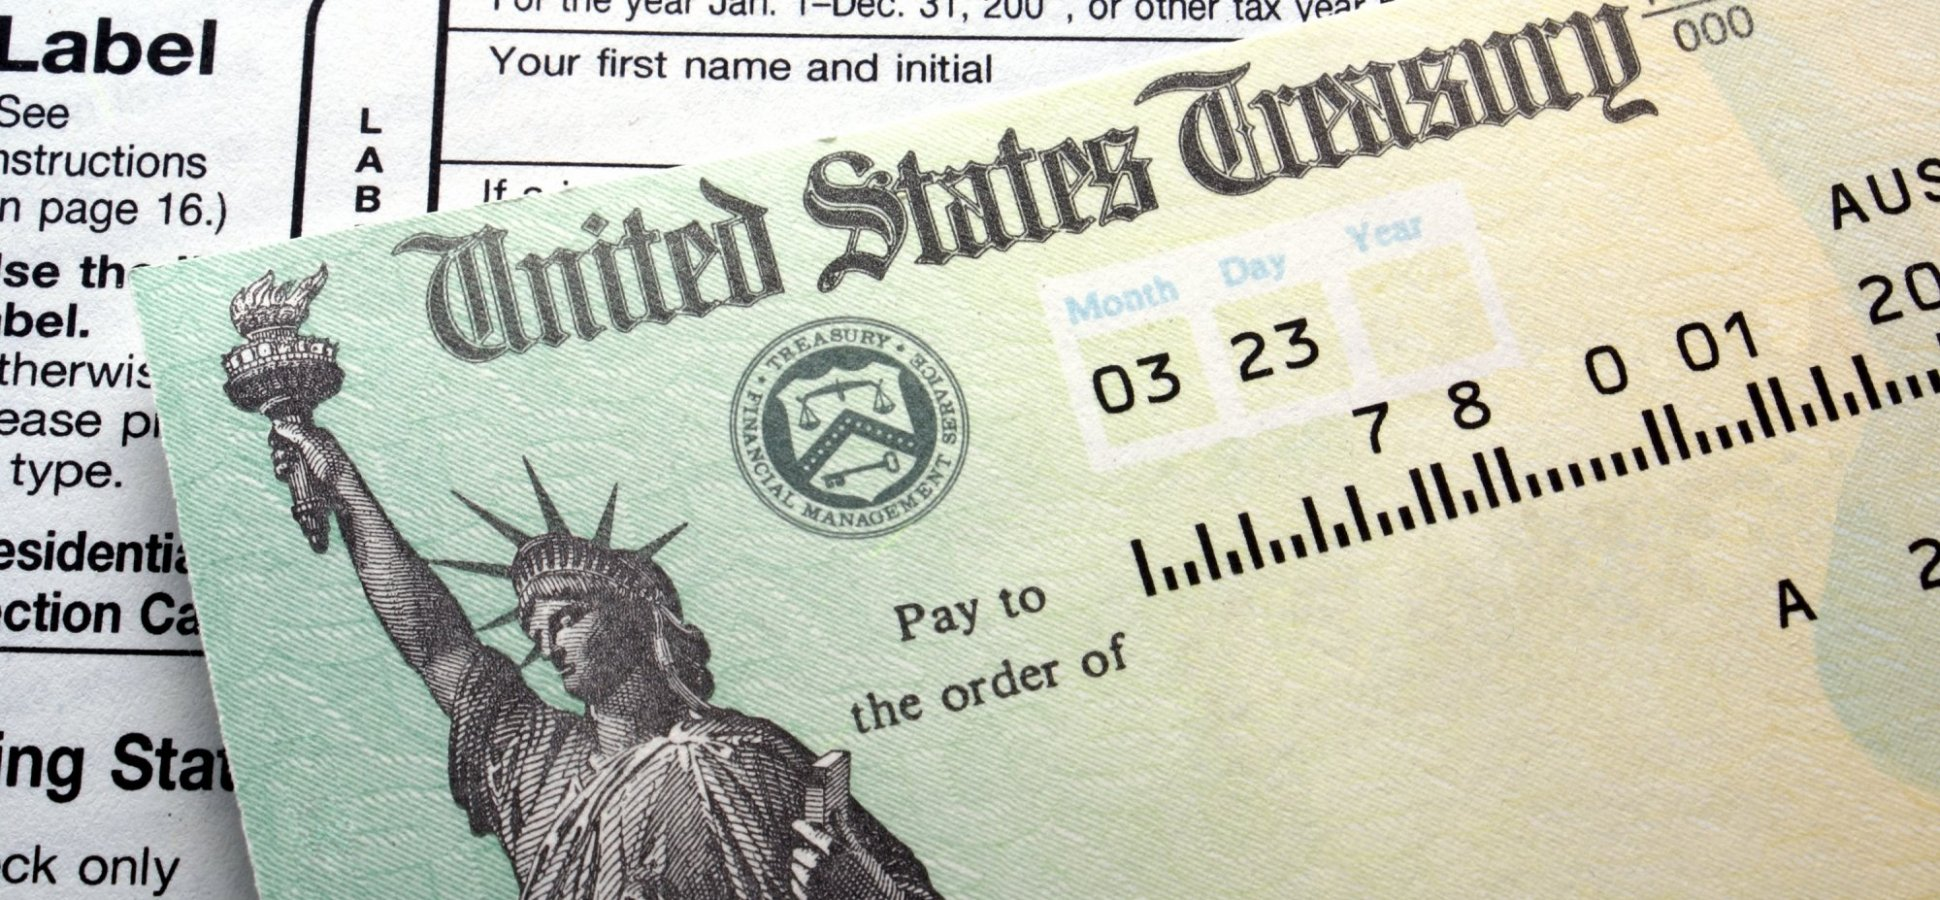 The New IRS W-4 Form Asks Intrusive Questions Your Employees Won't Want to Answer